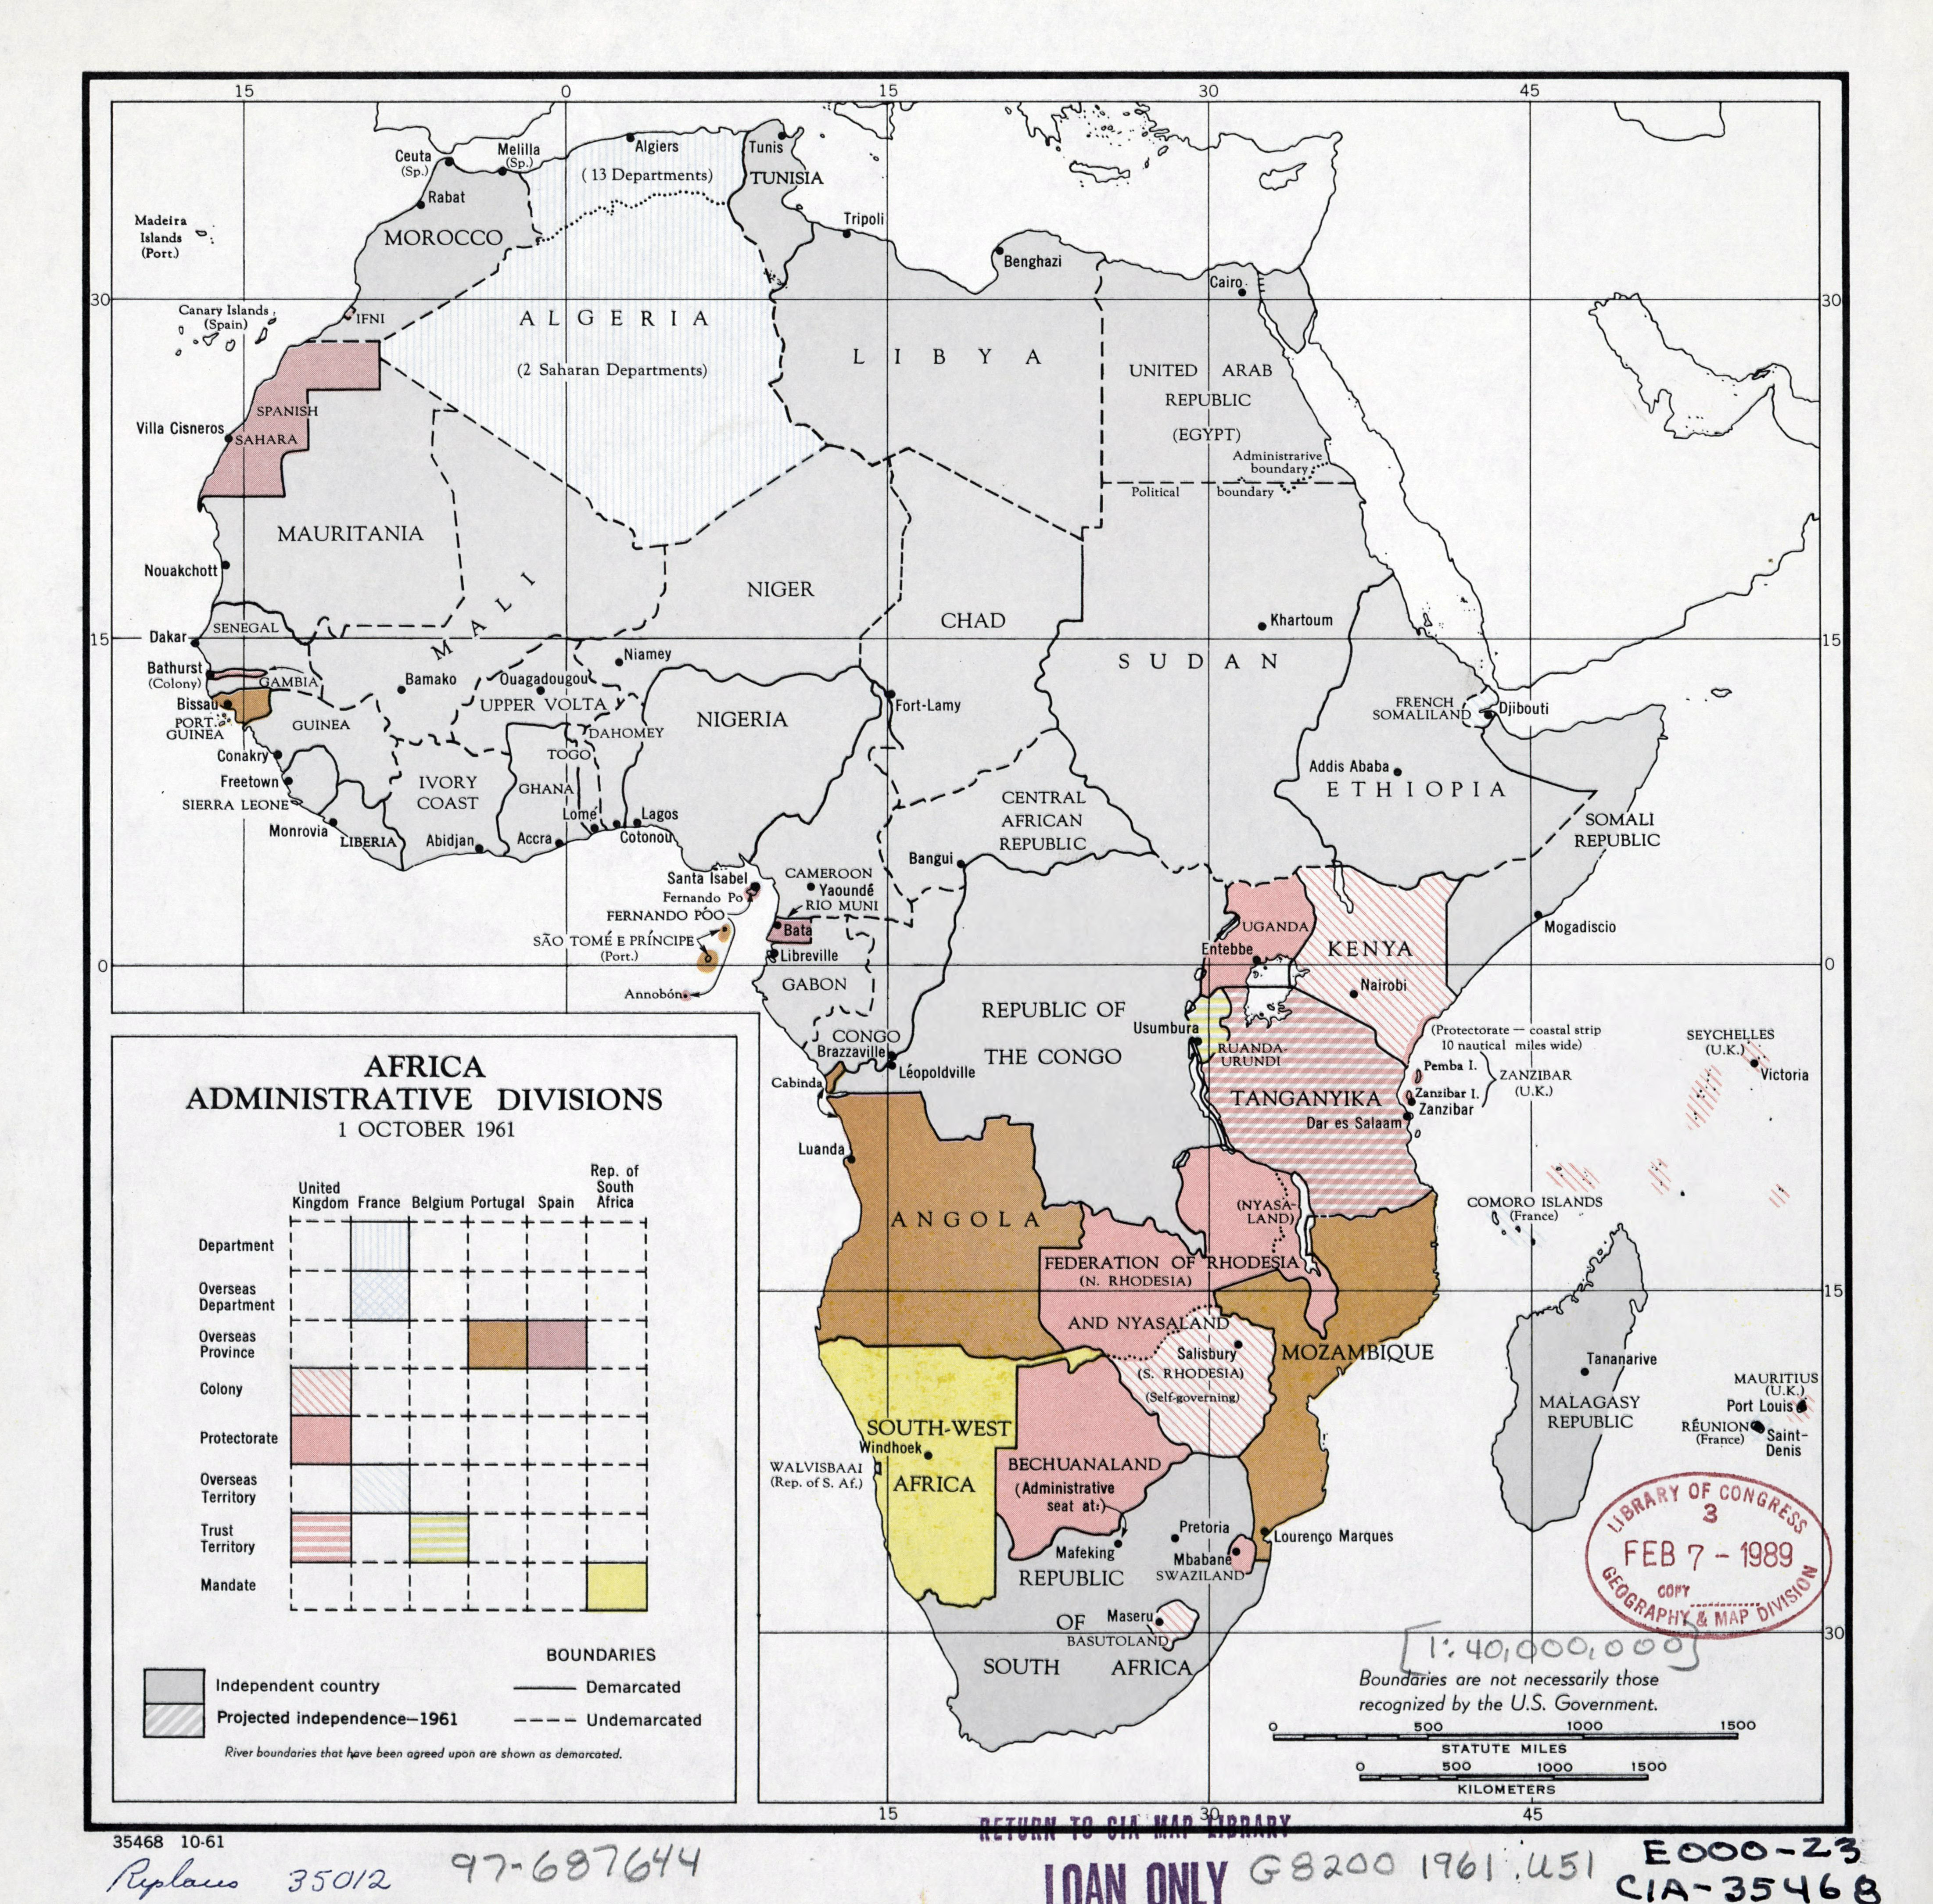 Large detail administrative divisions map of Africa with the marks